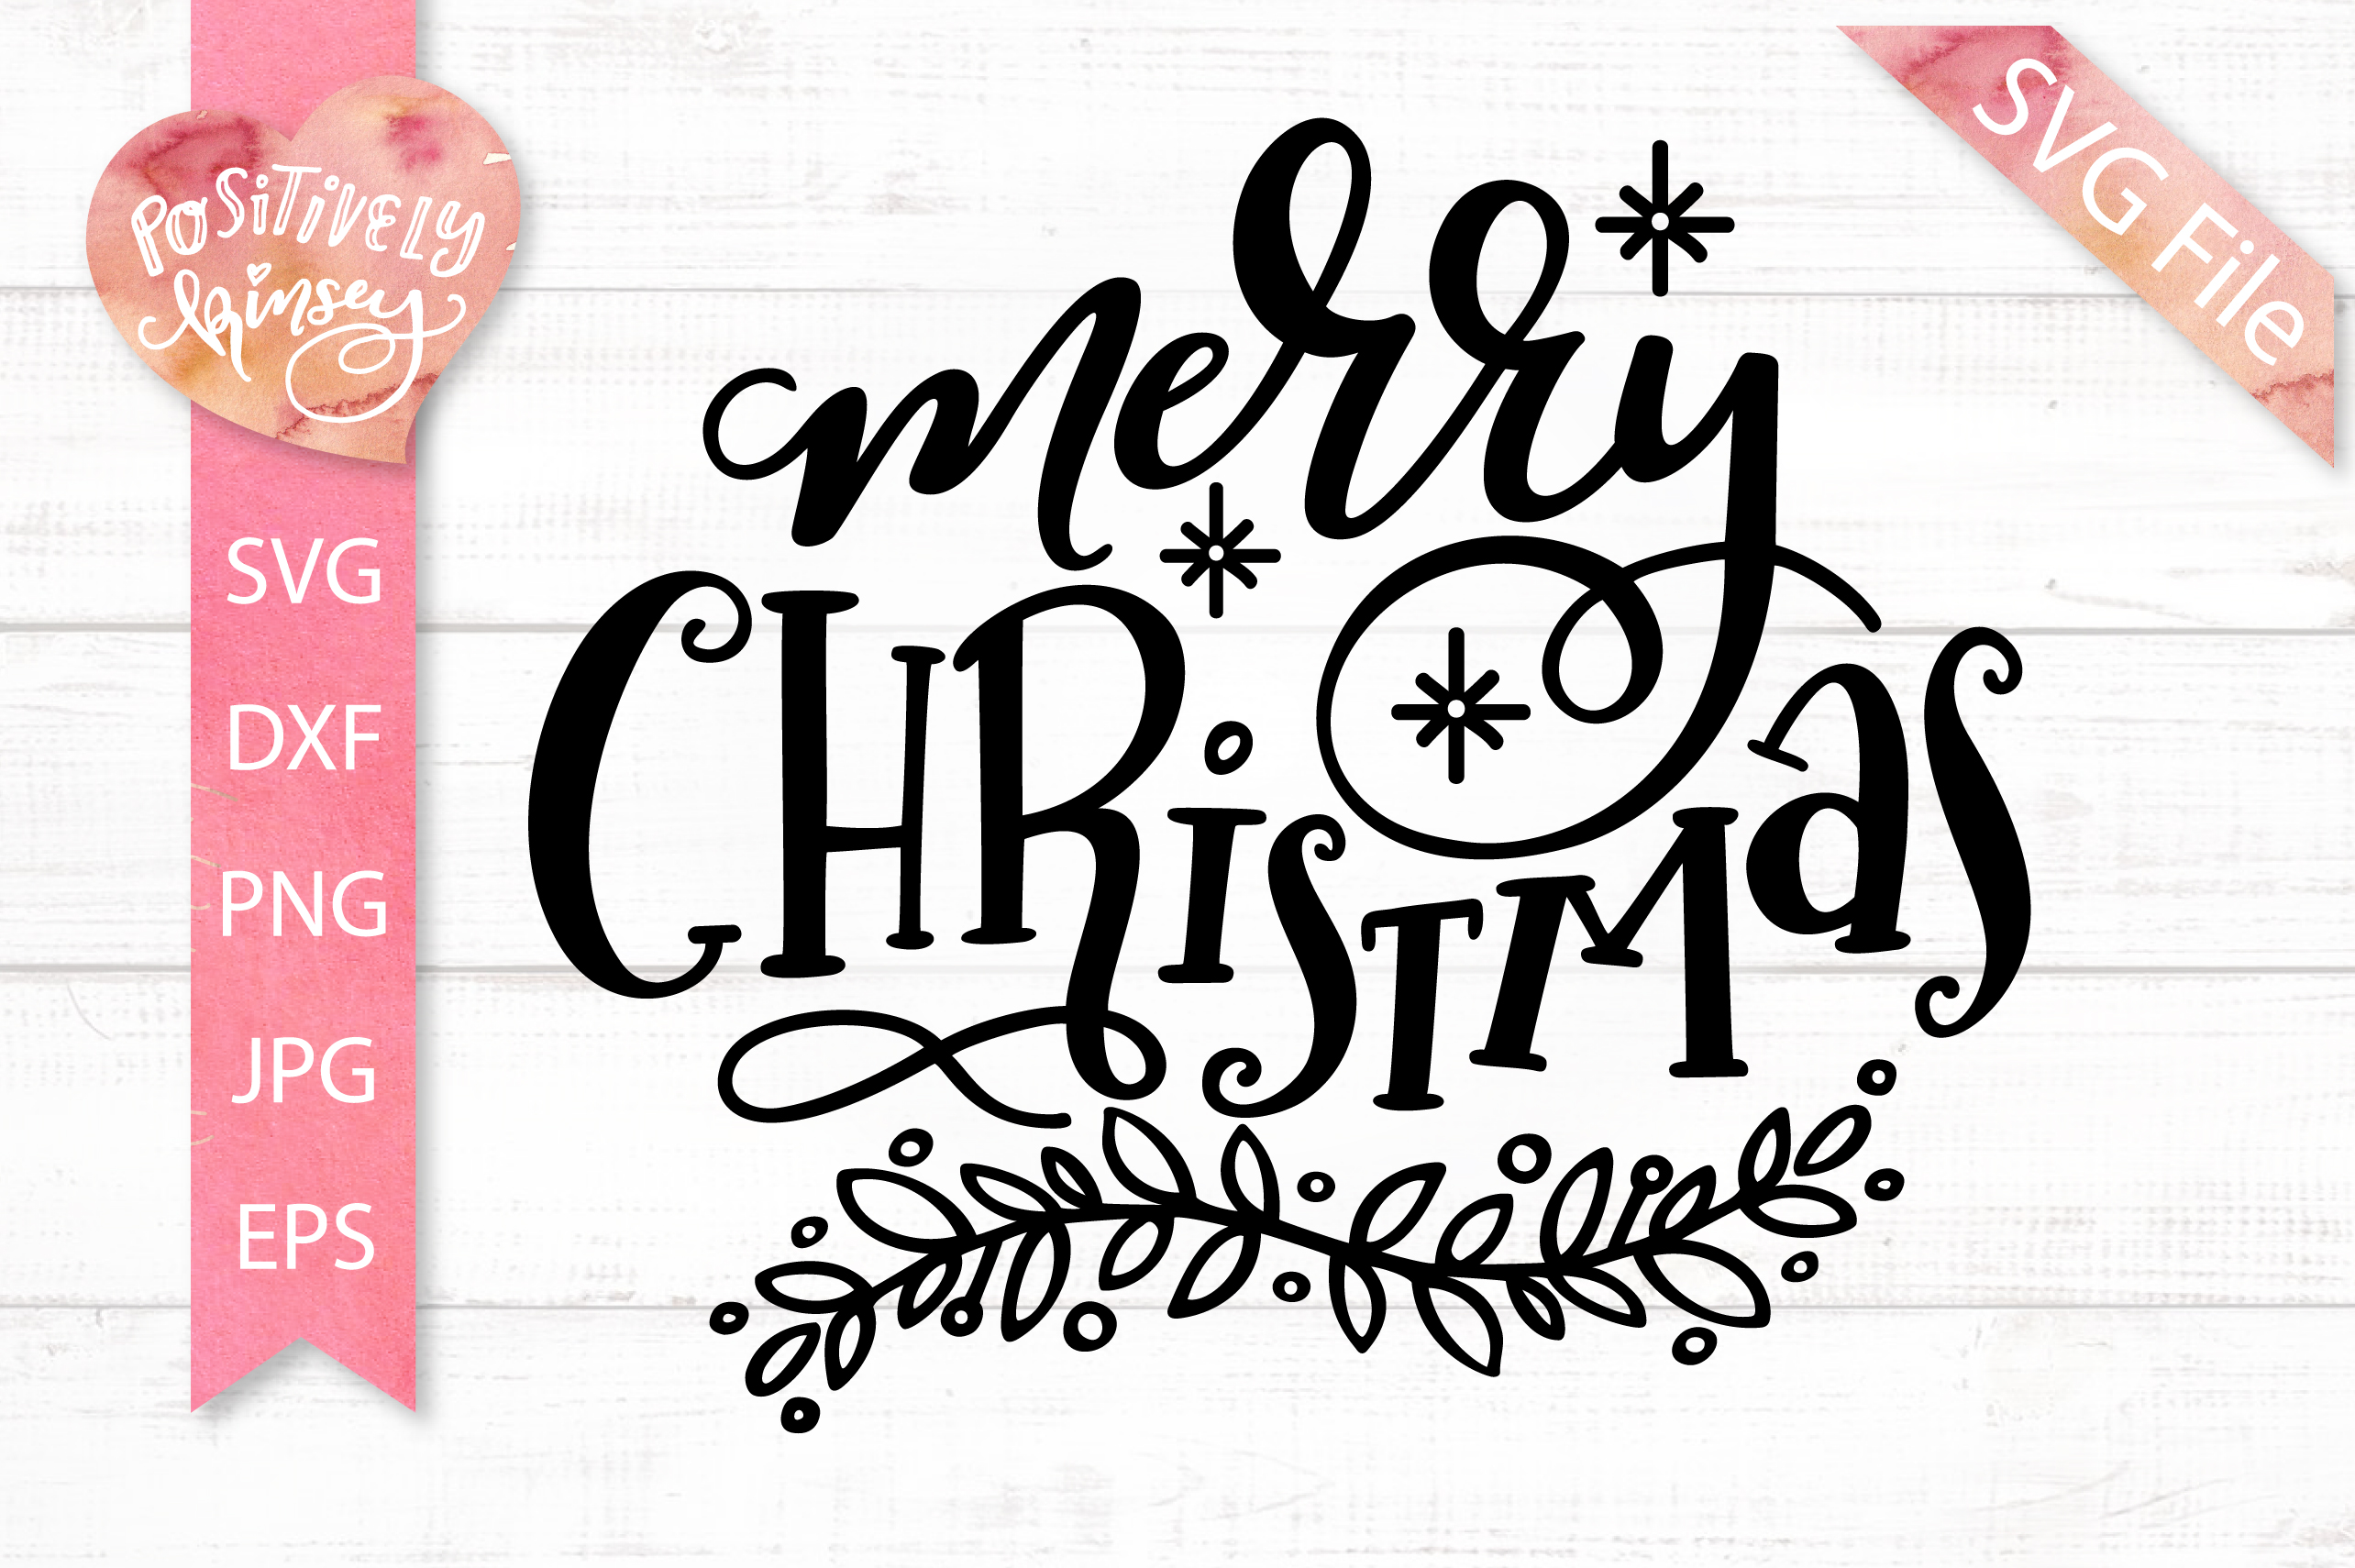 Merry Christmas SVG DXF PNG EPS Christmas Quote Svg Design example image 2